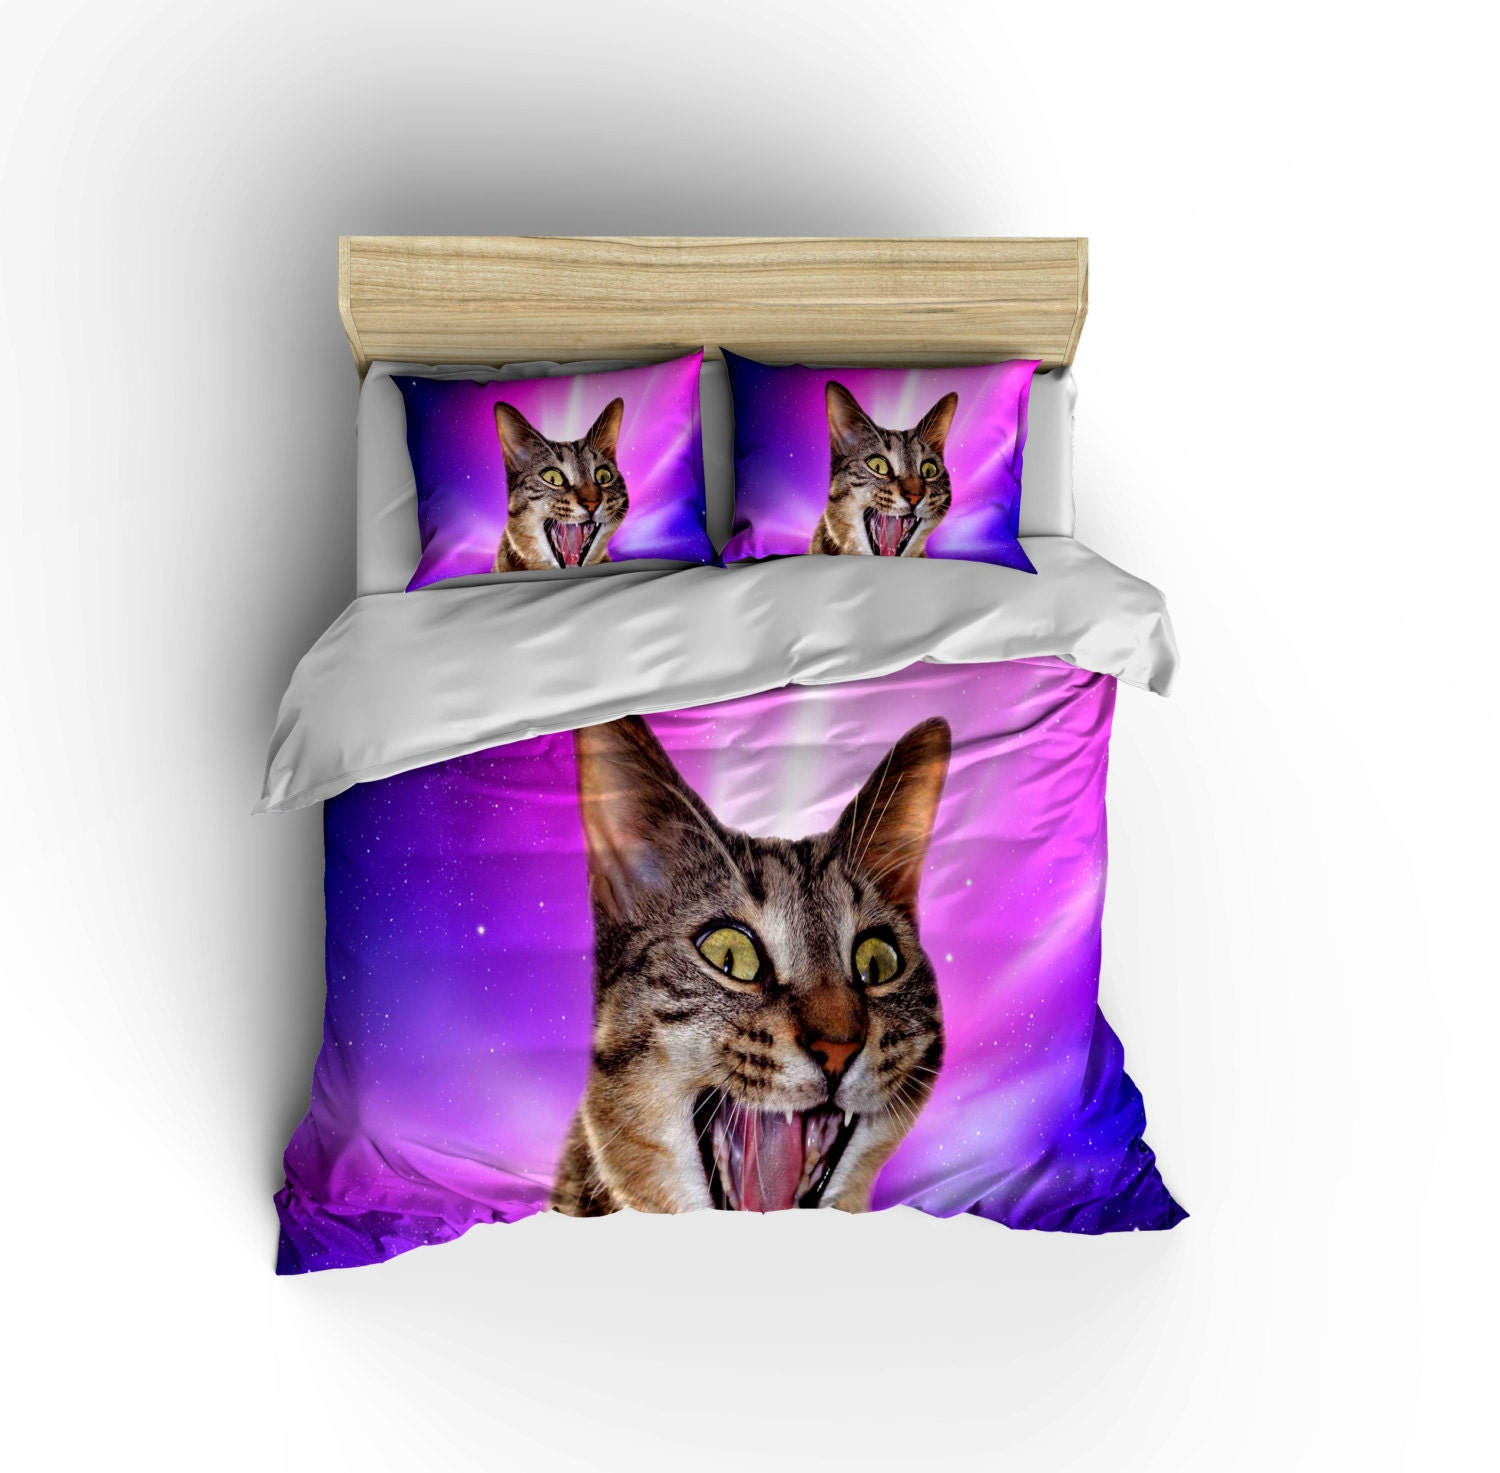 Epic Space Cat Bedding Set Crazy Cat In Space Duvet Cover